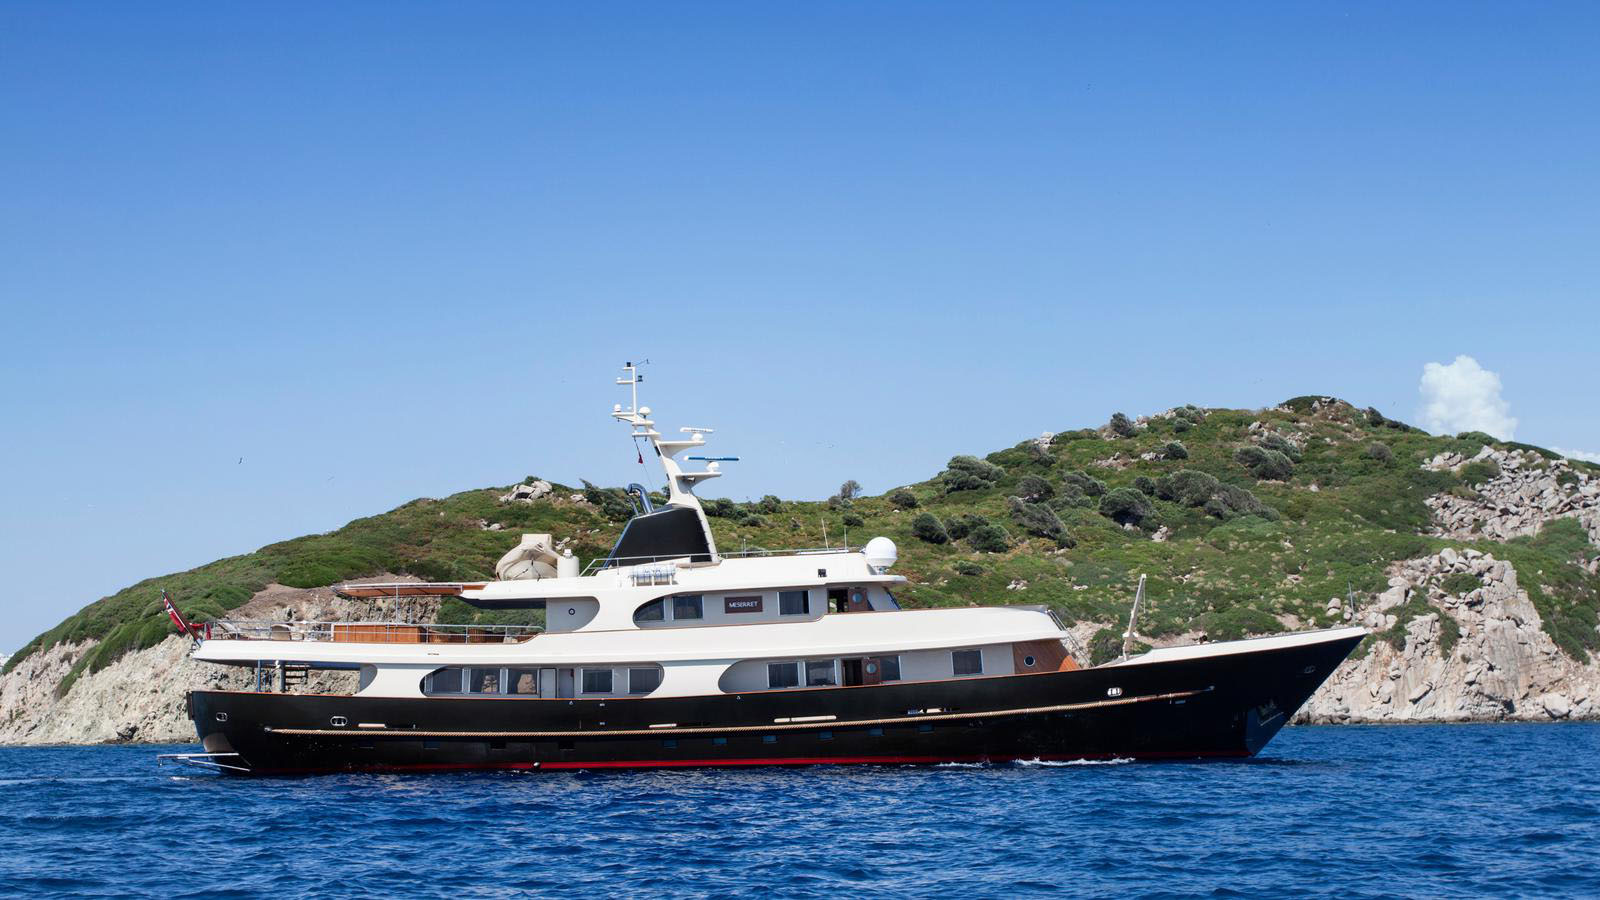 Meserret Yacht for Charter - IYC